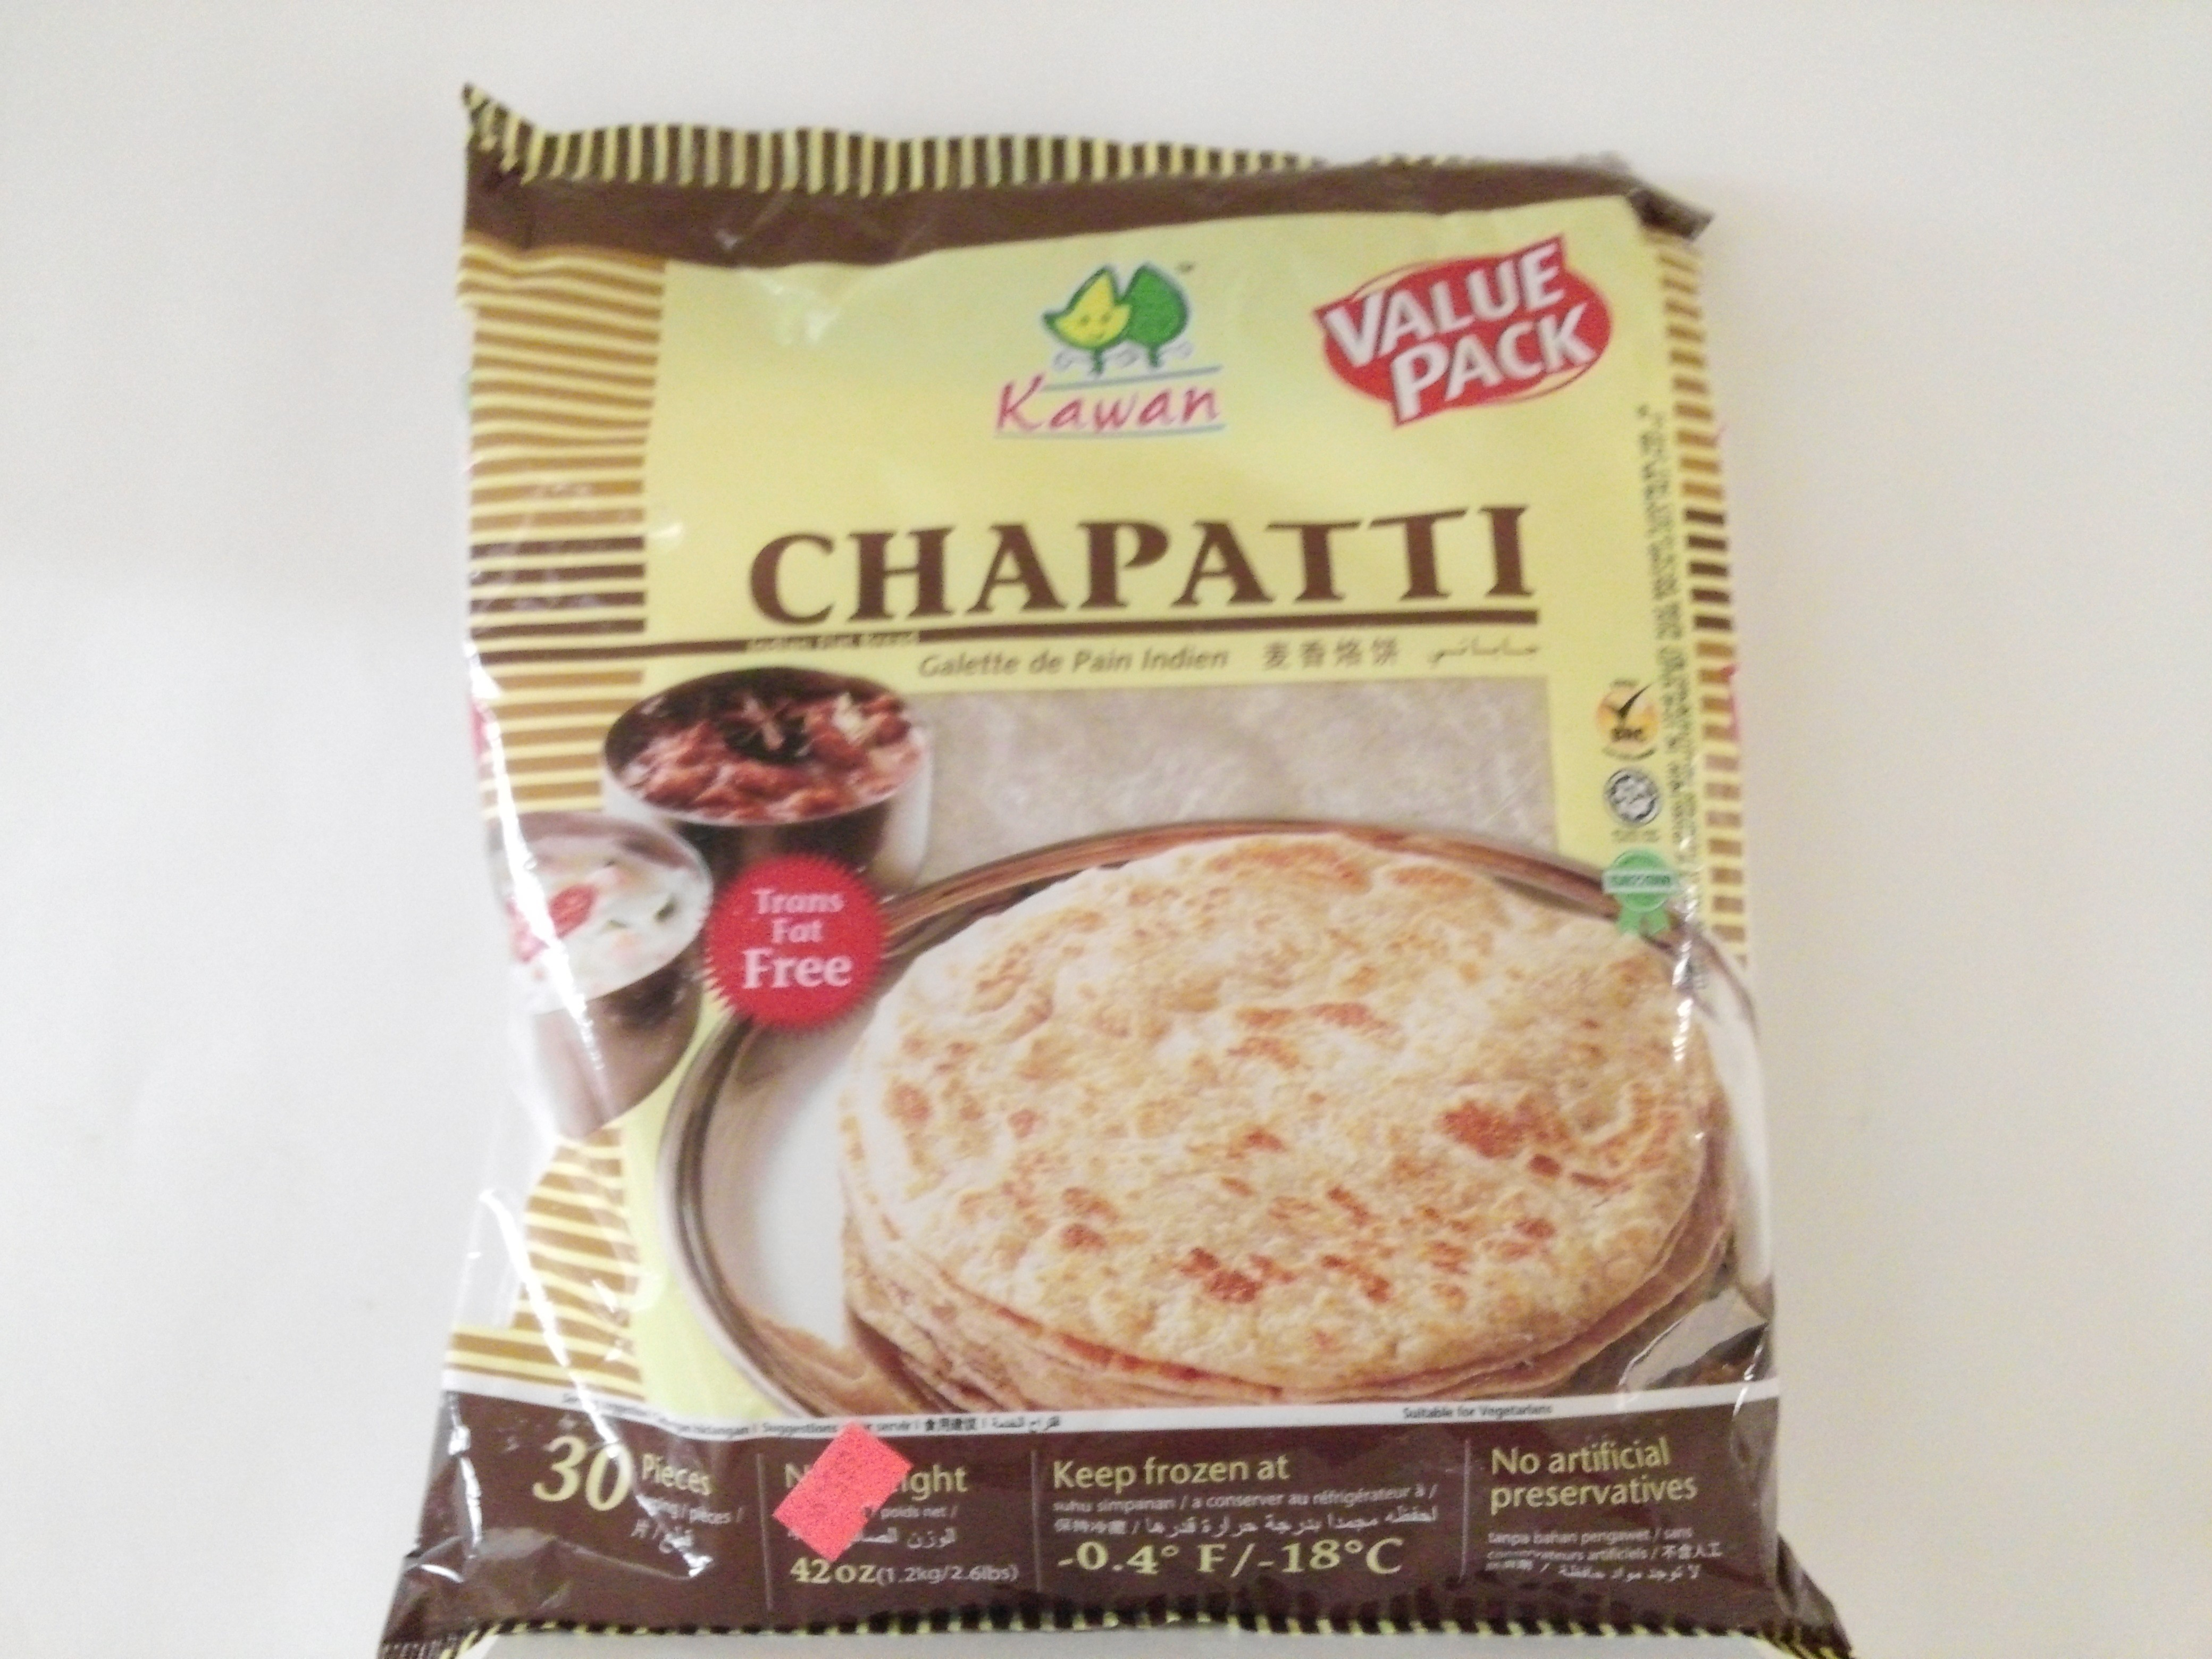 Kawan Chapati (Value Pack) 30 Pcs 42 oz